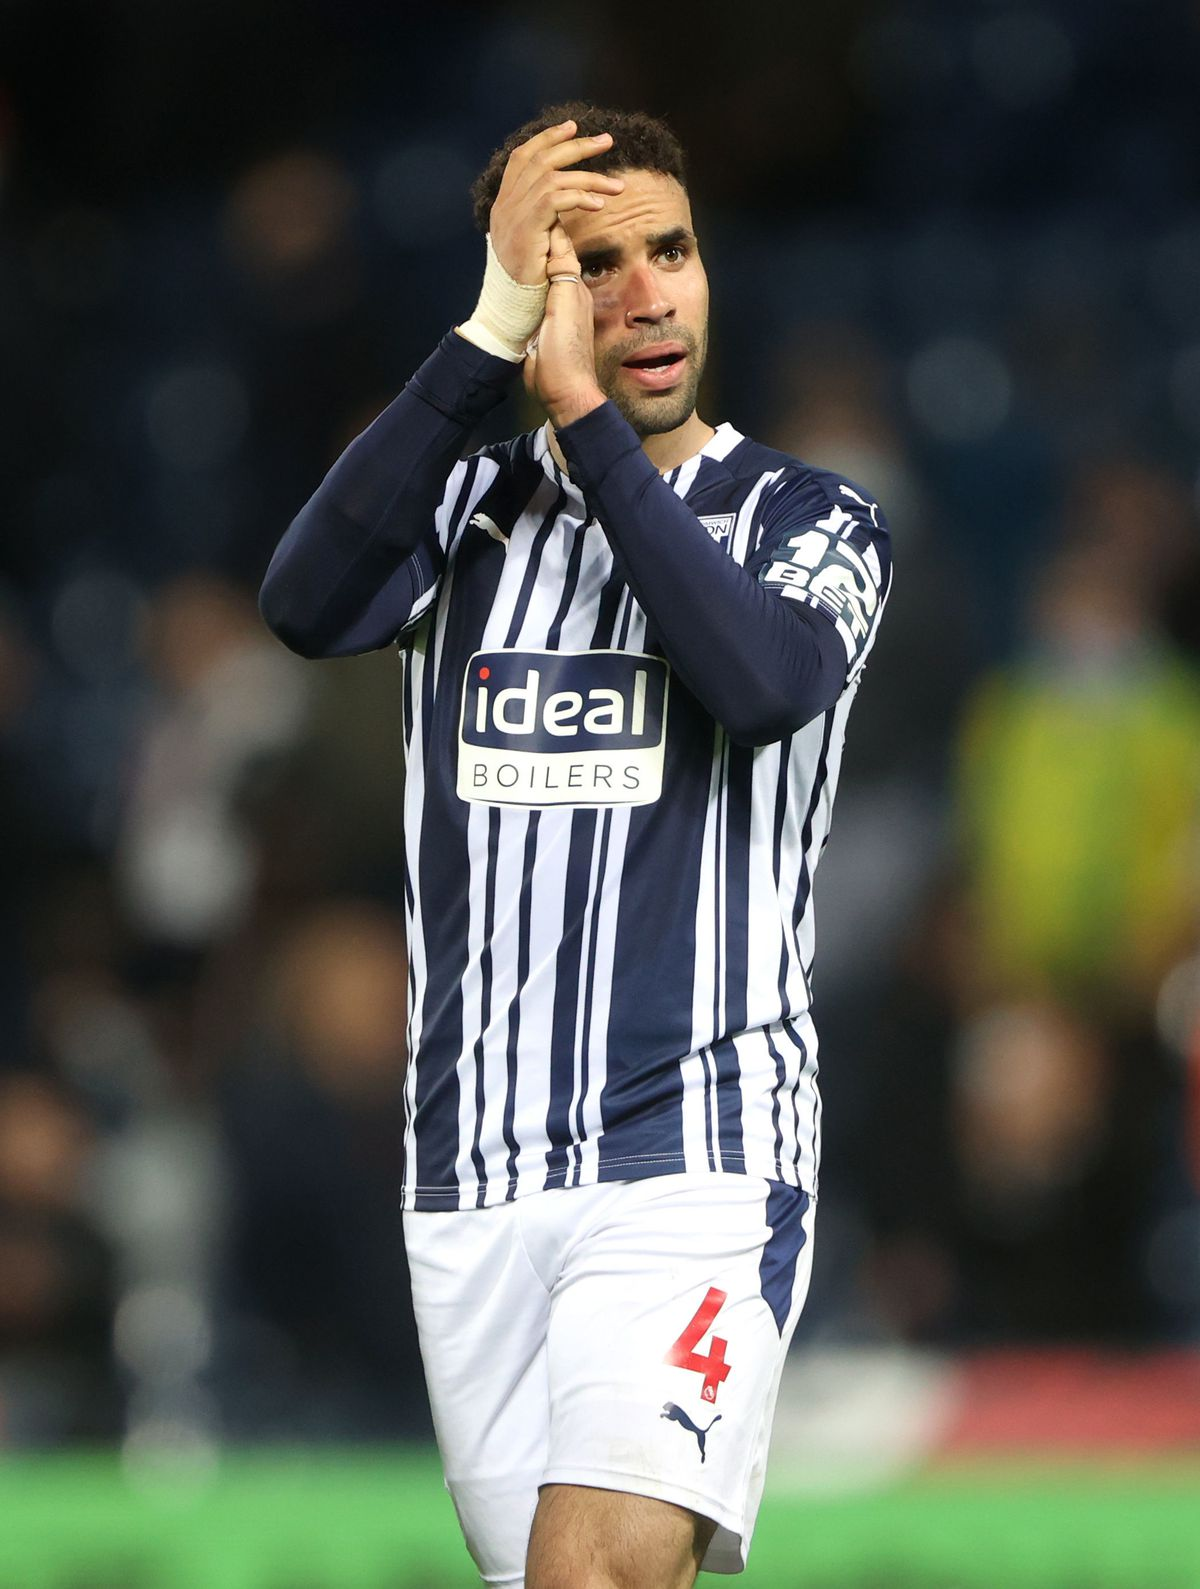 Hal Robson-Kanu will leave West Brom